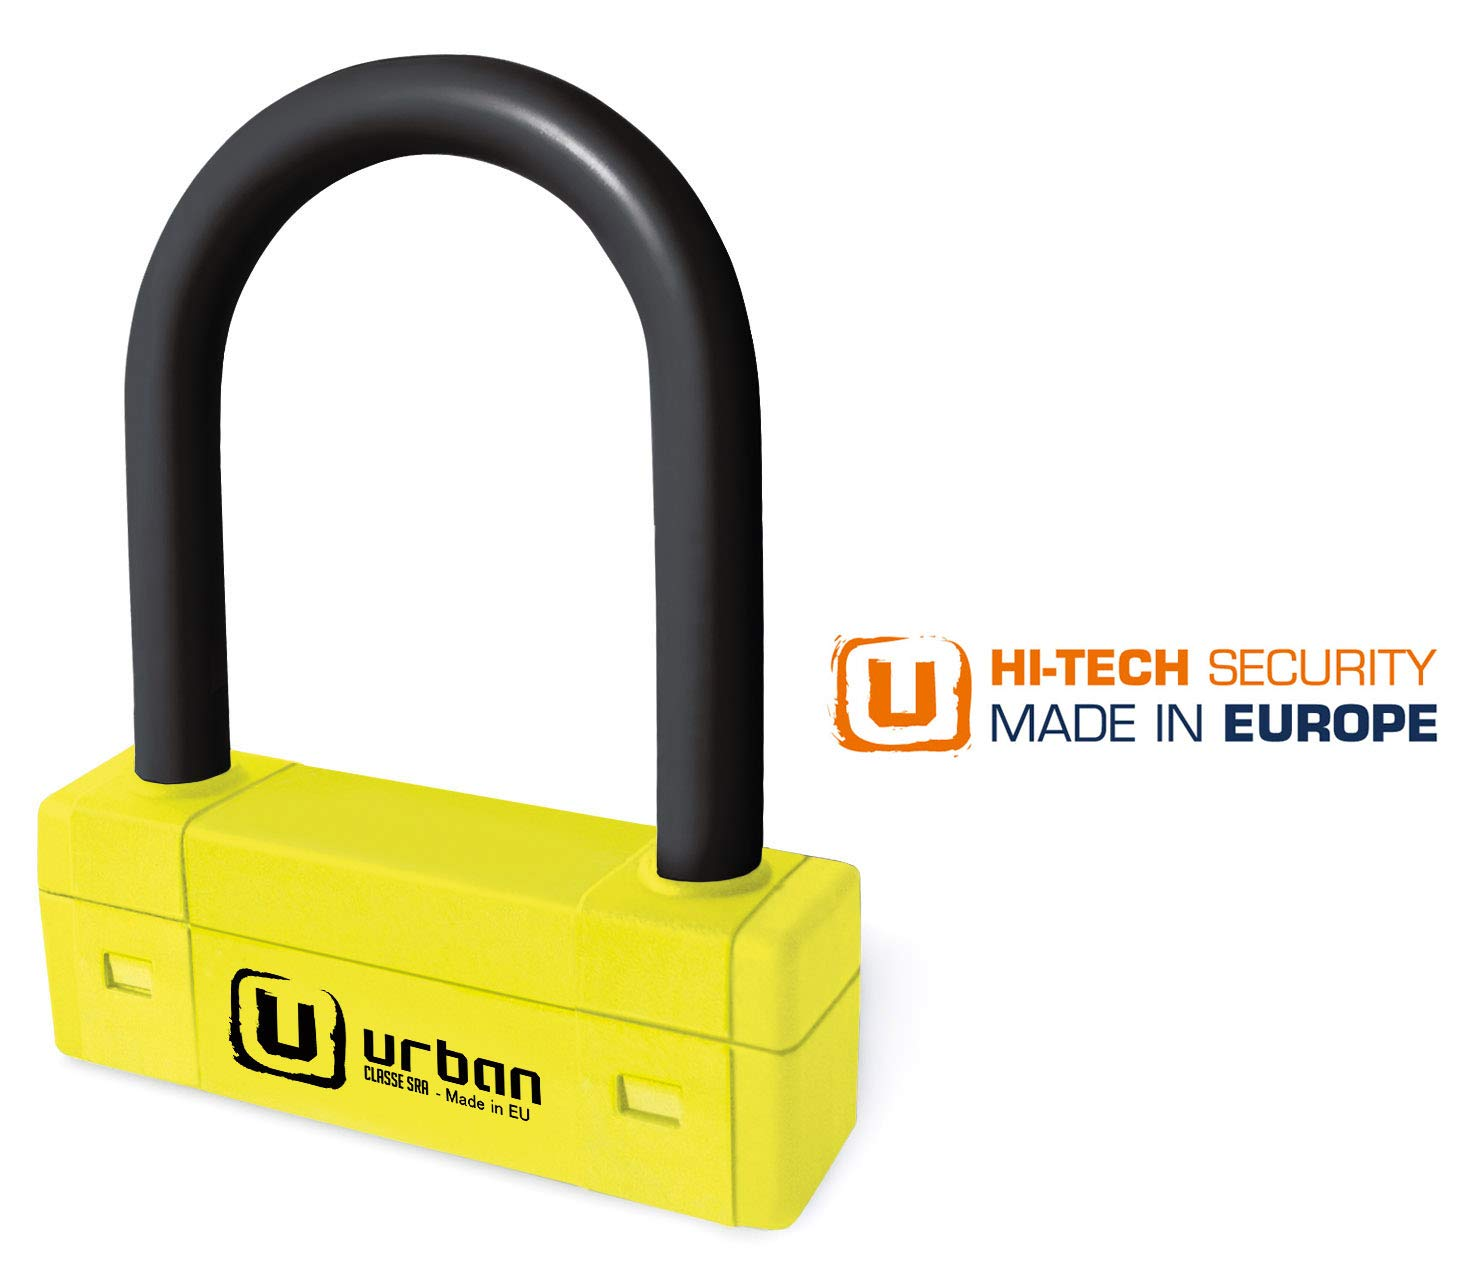 Doble Cierre /ø18 85x250 mm 85x250 Made in EU Urban Security UR85250Y Candado Antirrobo U Alta Seguridad homologado Sra